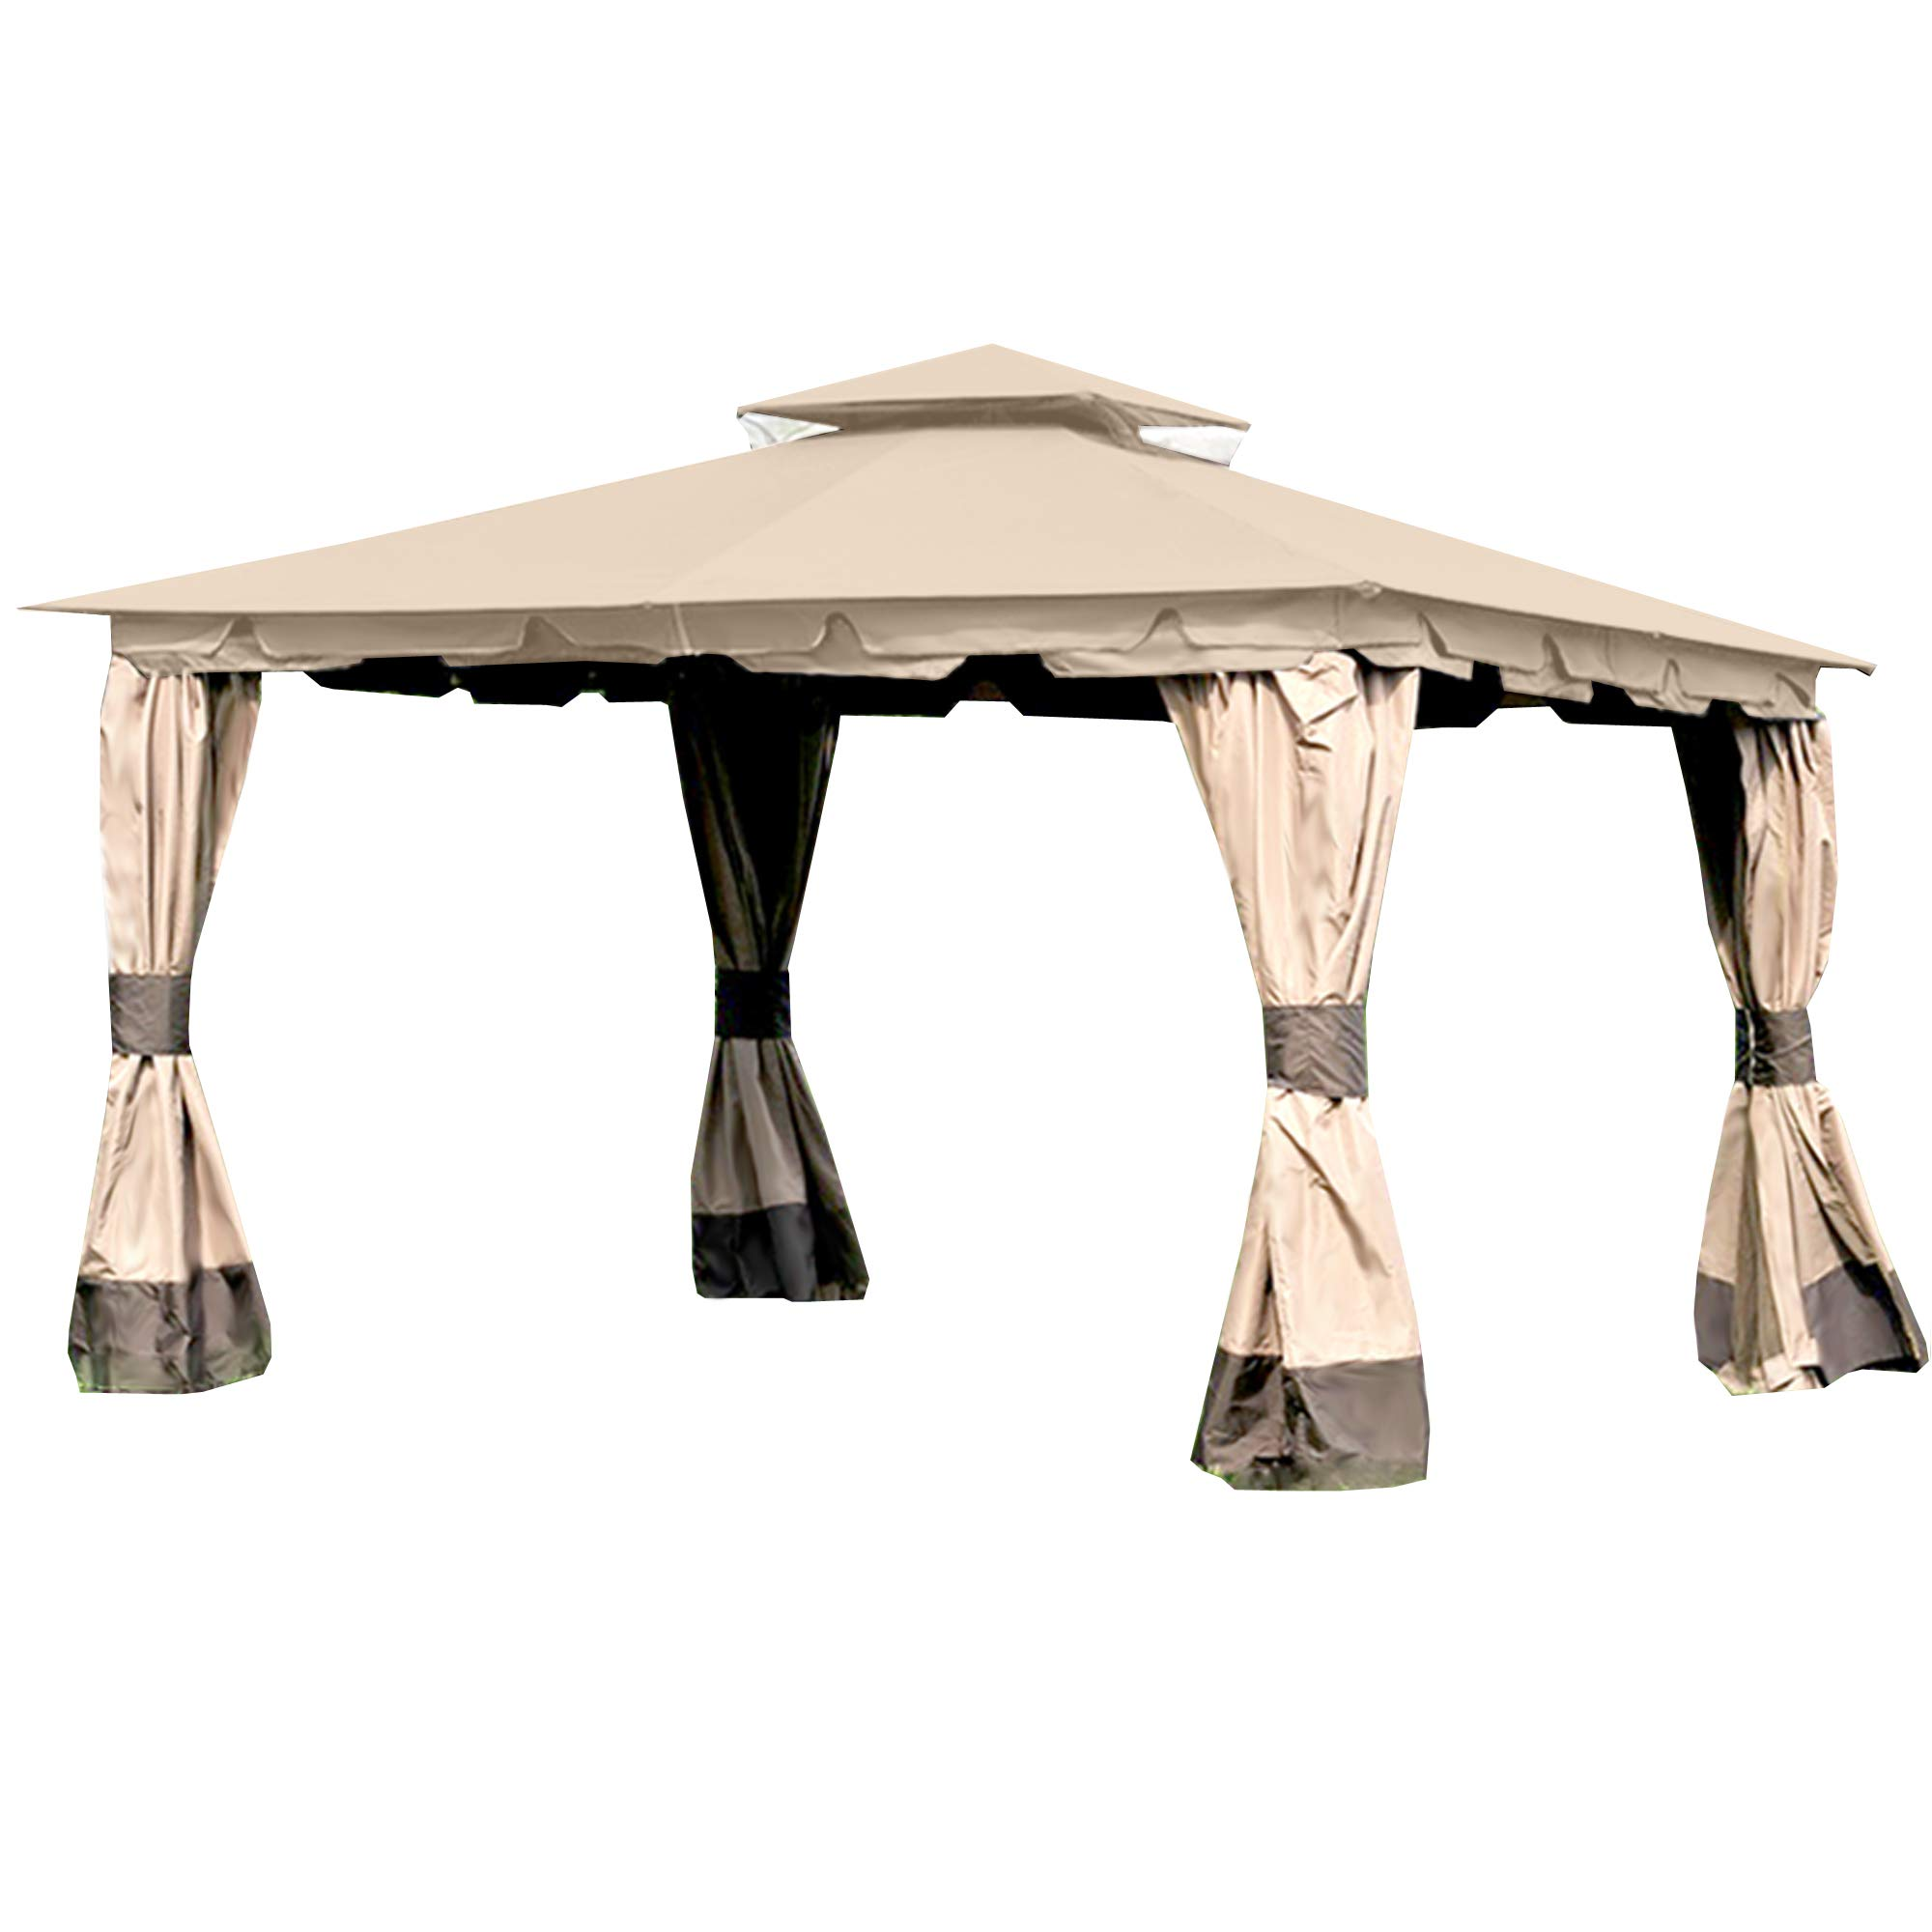 Garden Winds Replacement Canopy for the Monterey Gazebo with RipLock Technology